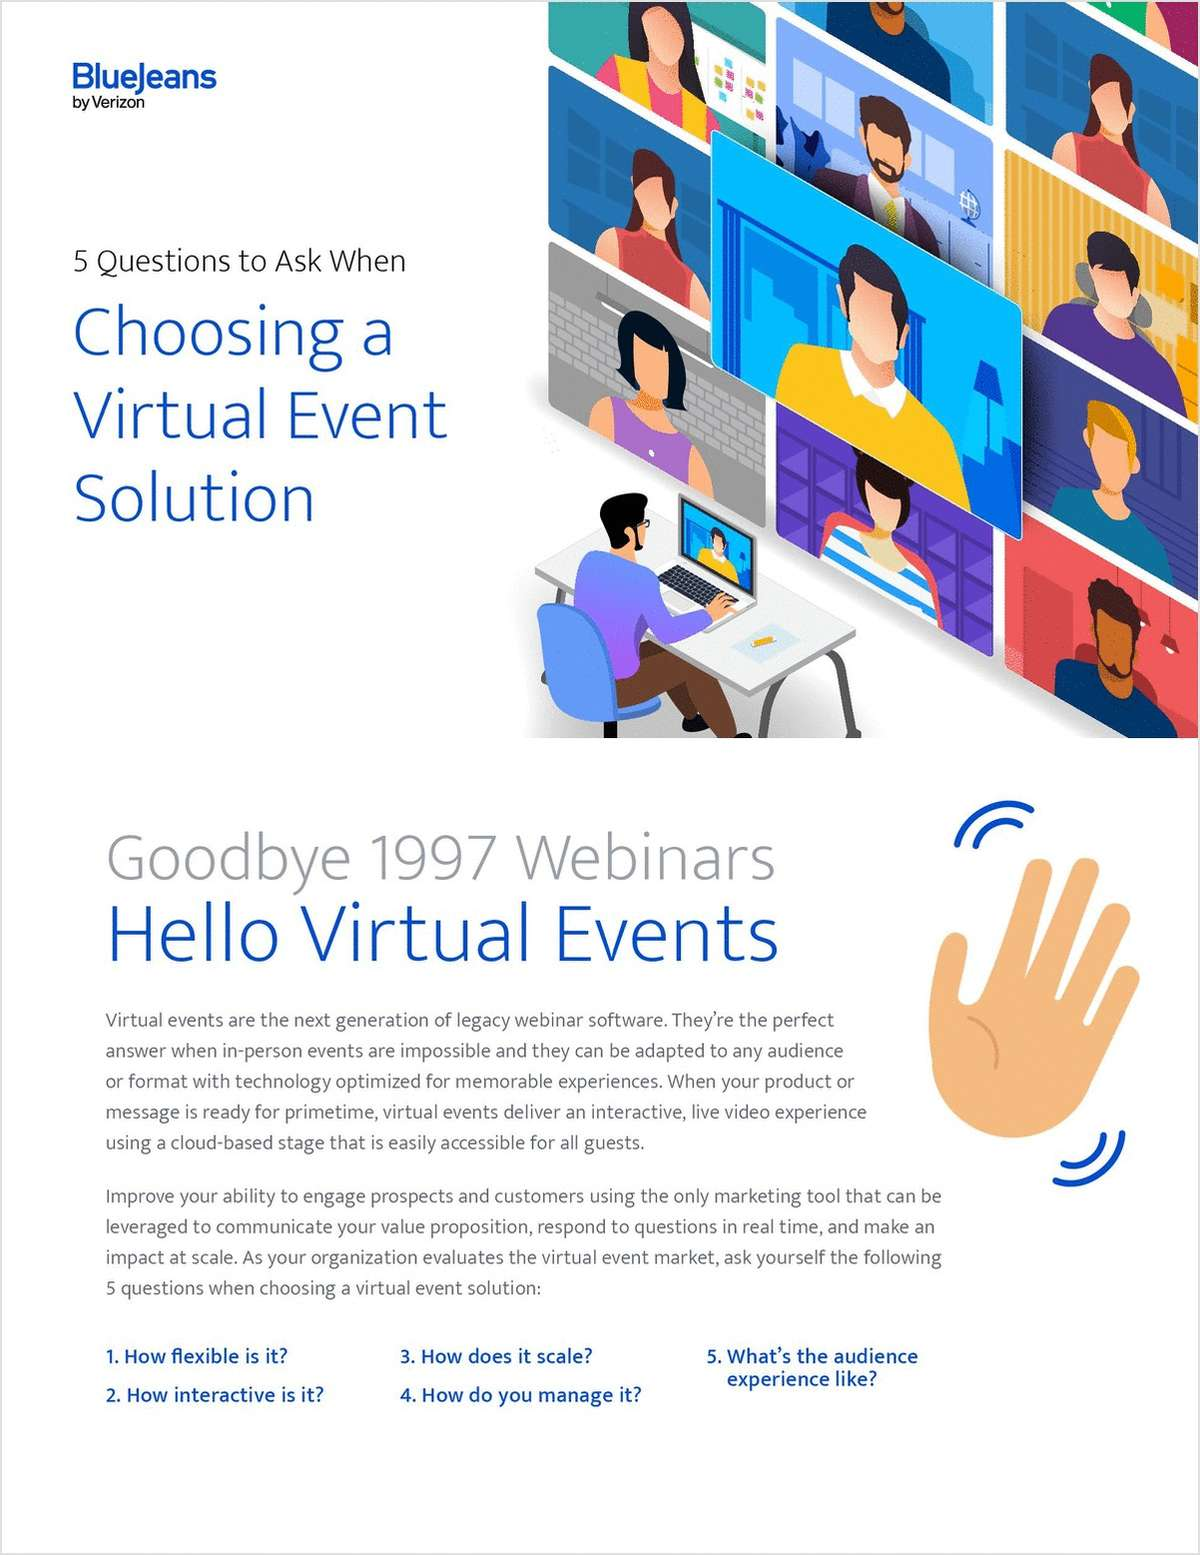 5 Questions to Ask When Choosing a Virtual Event Solution